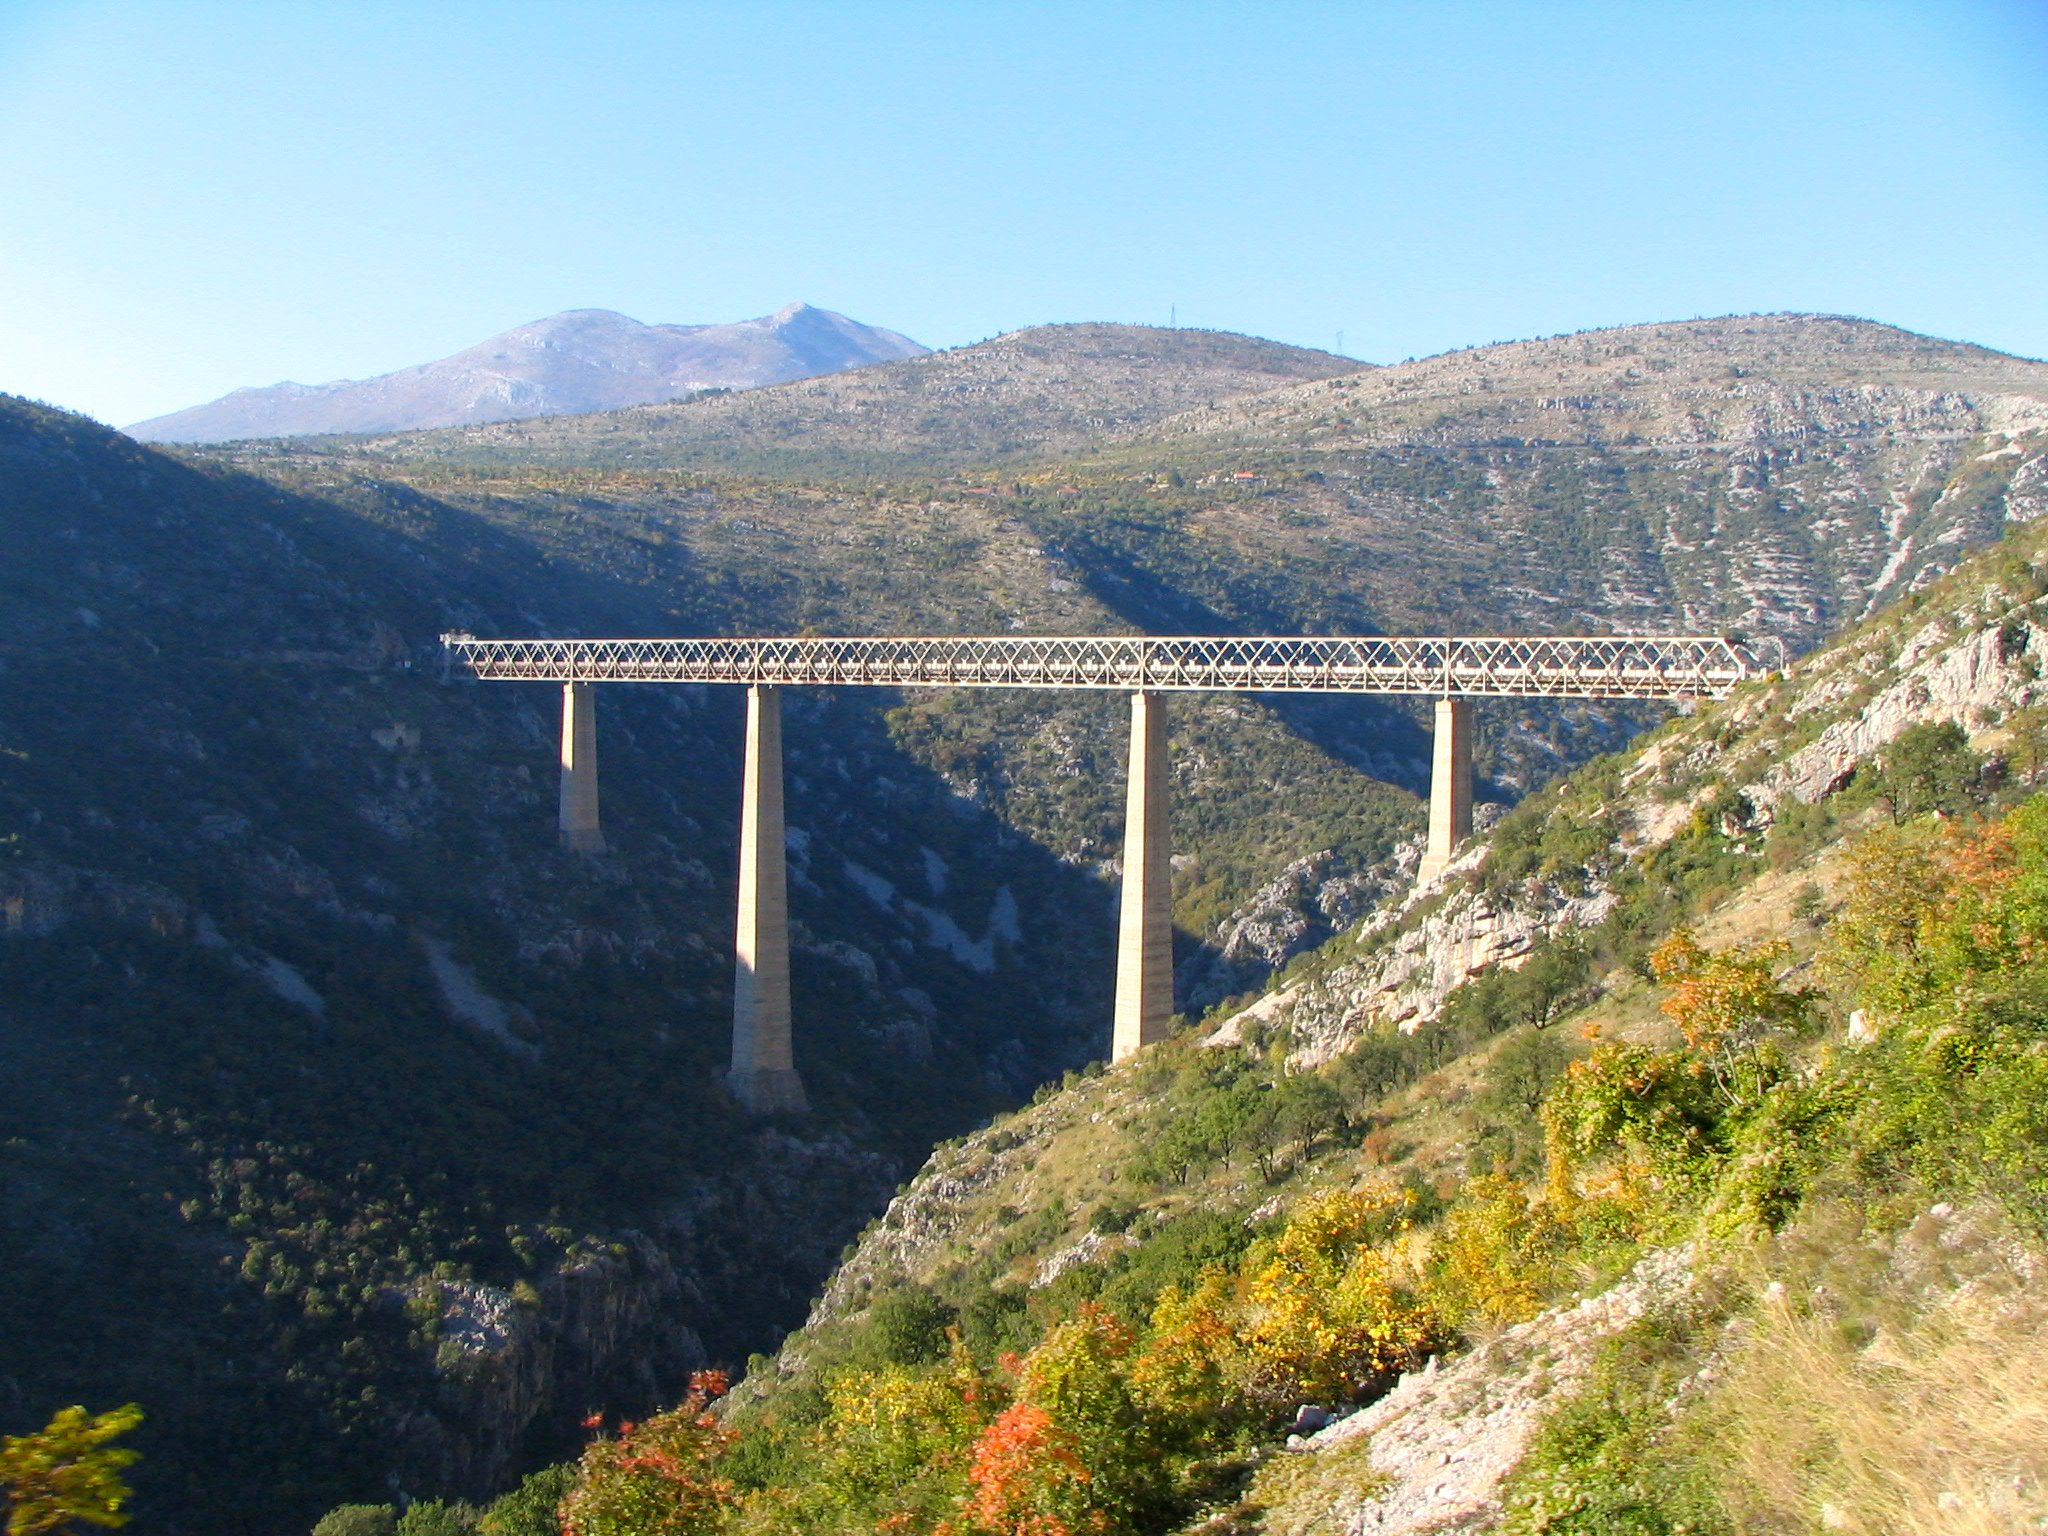 Mala Vijeka viaduct by Vicuna R, Flickr, CC BY-SA 2.0